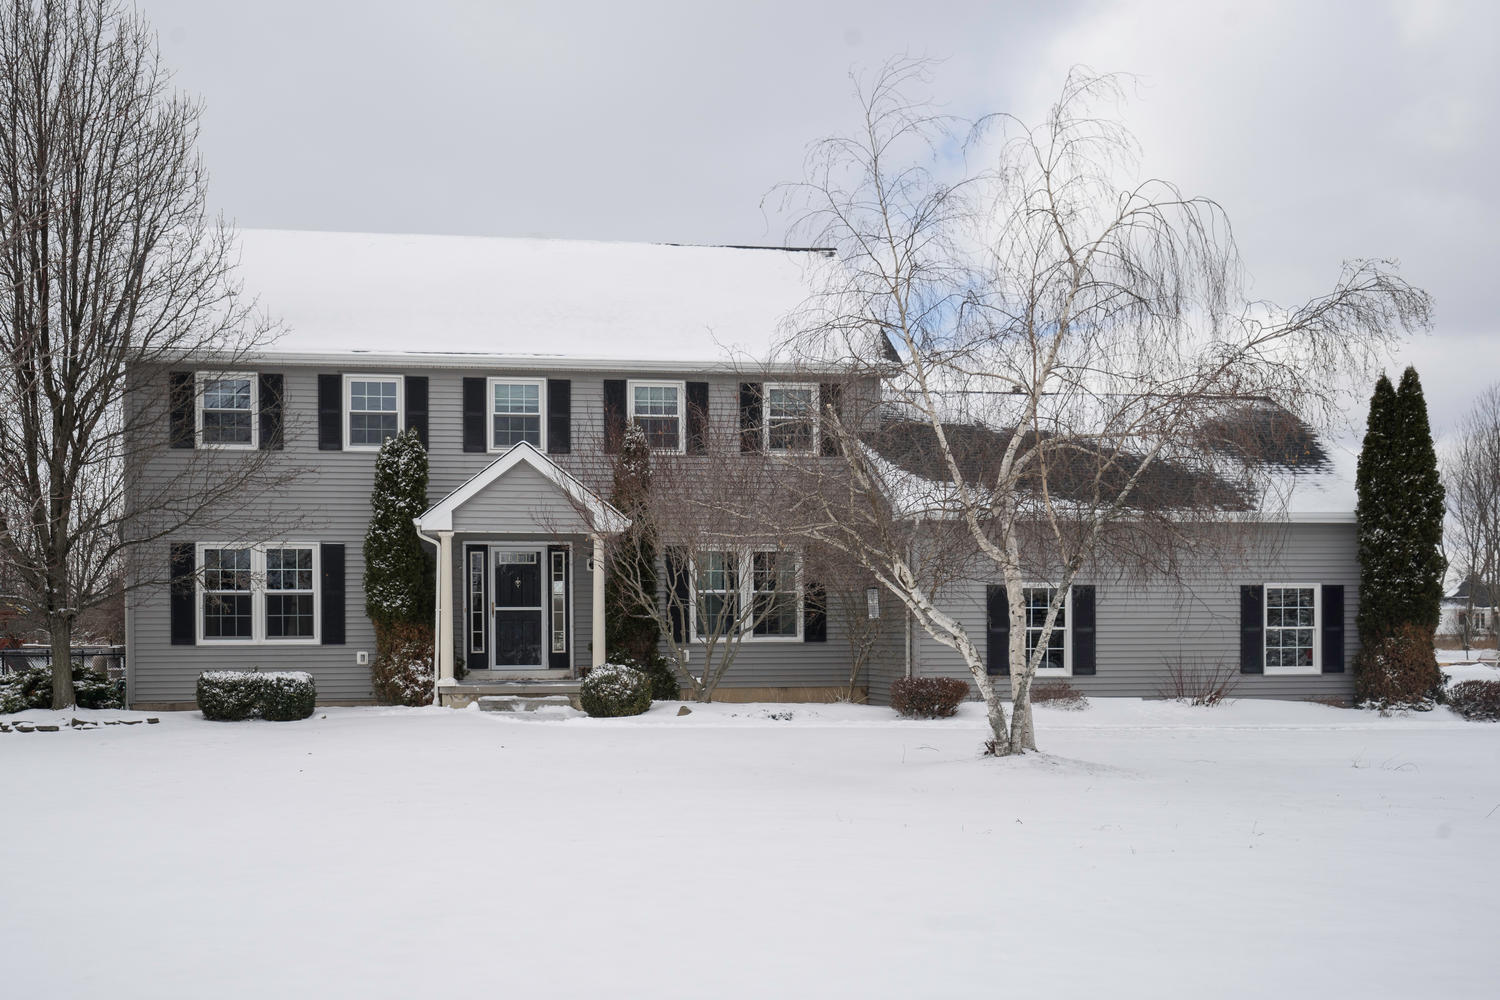 SOLD: 5940 Kraus Rd, Clarence | $359,900